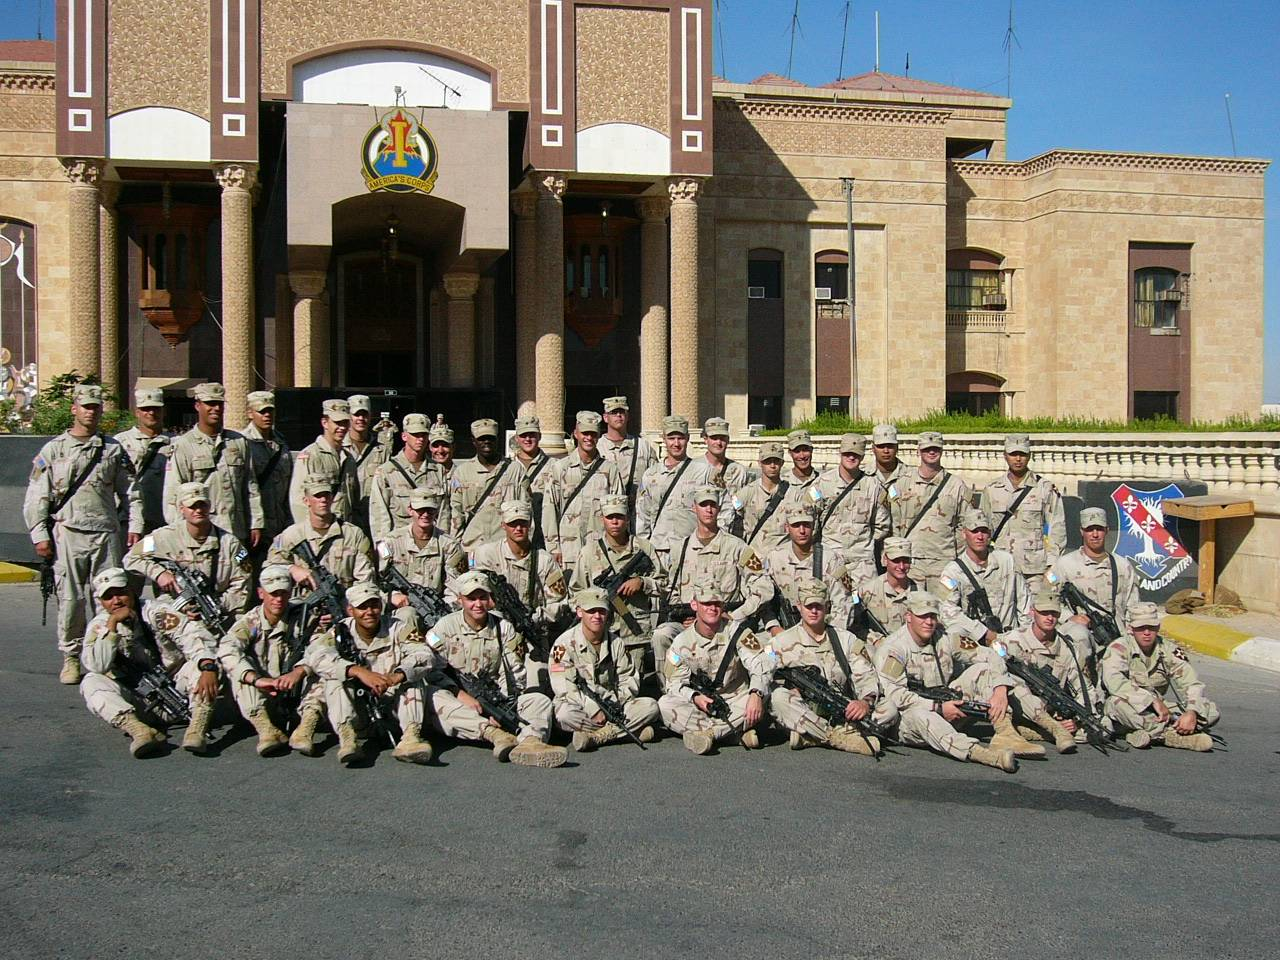 Sgt. De Roo with our US troops in front of one of Saddam Hussein's palaces.